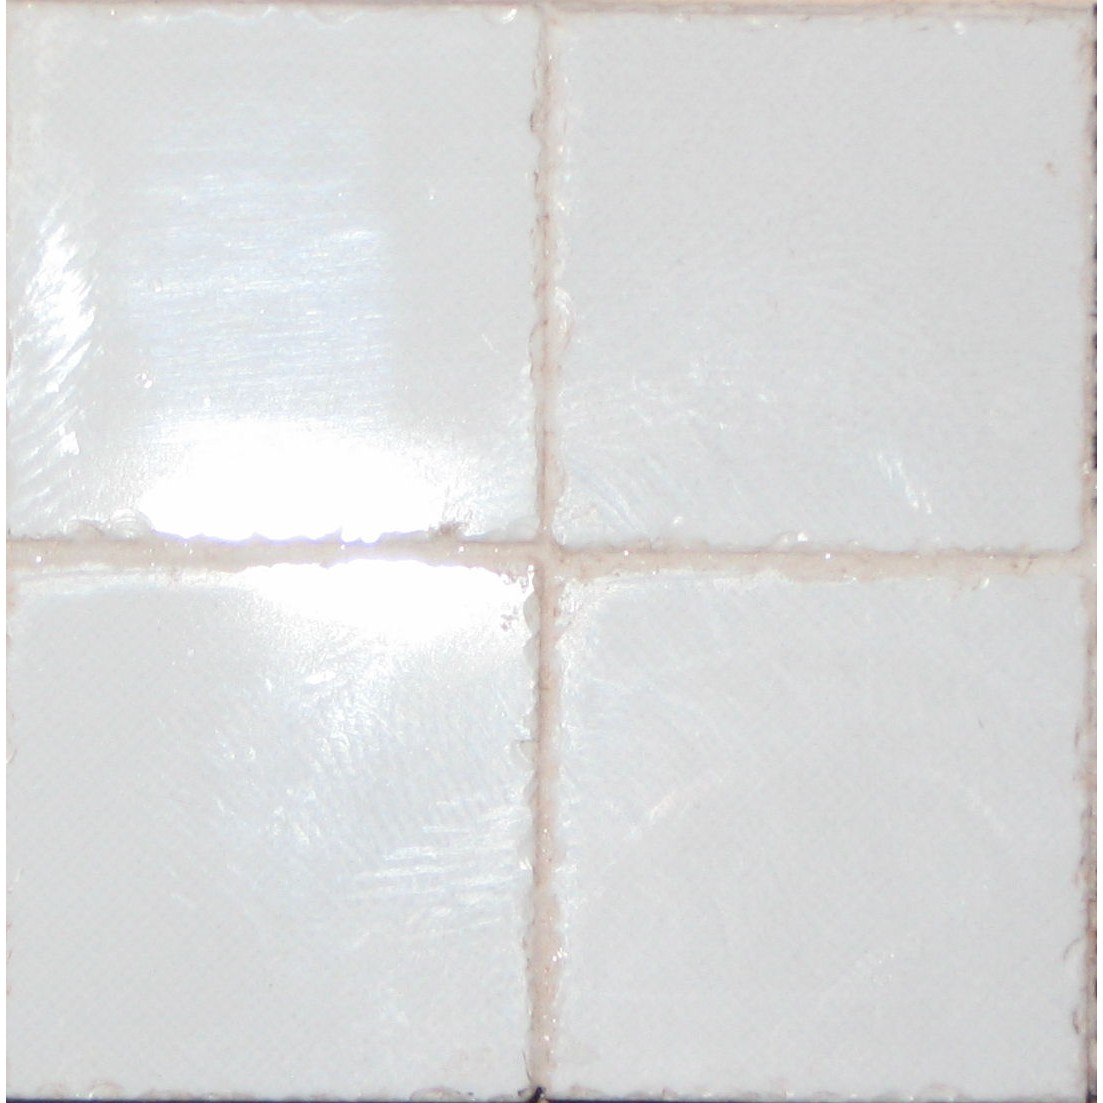 Stacey miniature masonry 34inch mixed ceramic tiles 25 black and 34inch mixed ceramic tiles 25 black and 25 white per pack dailygadgetfo Gallery